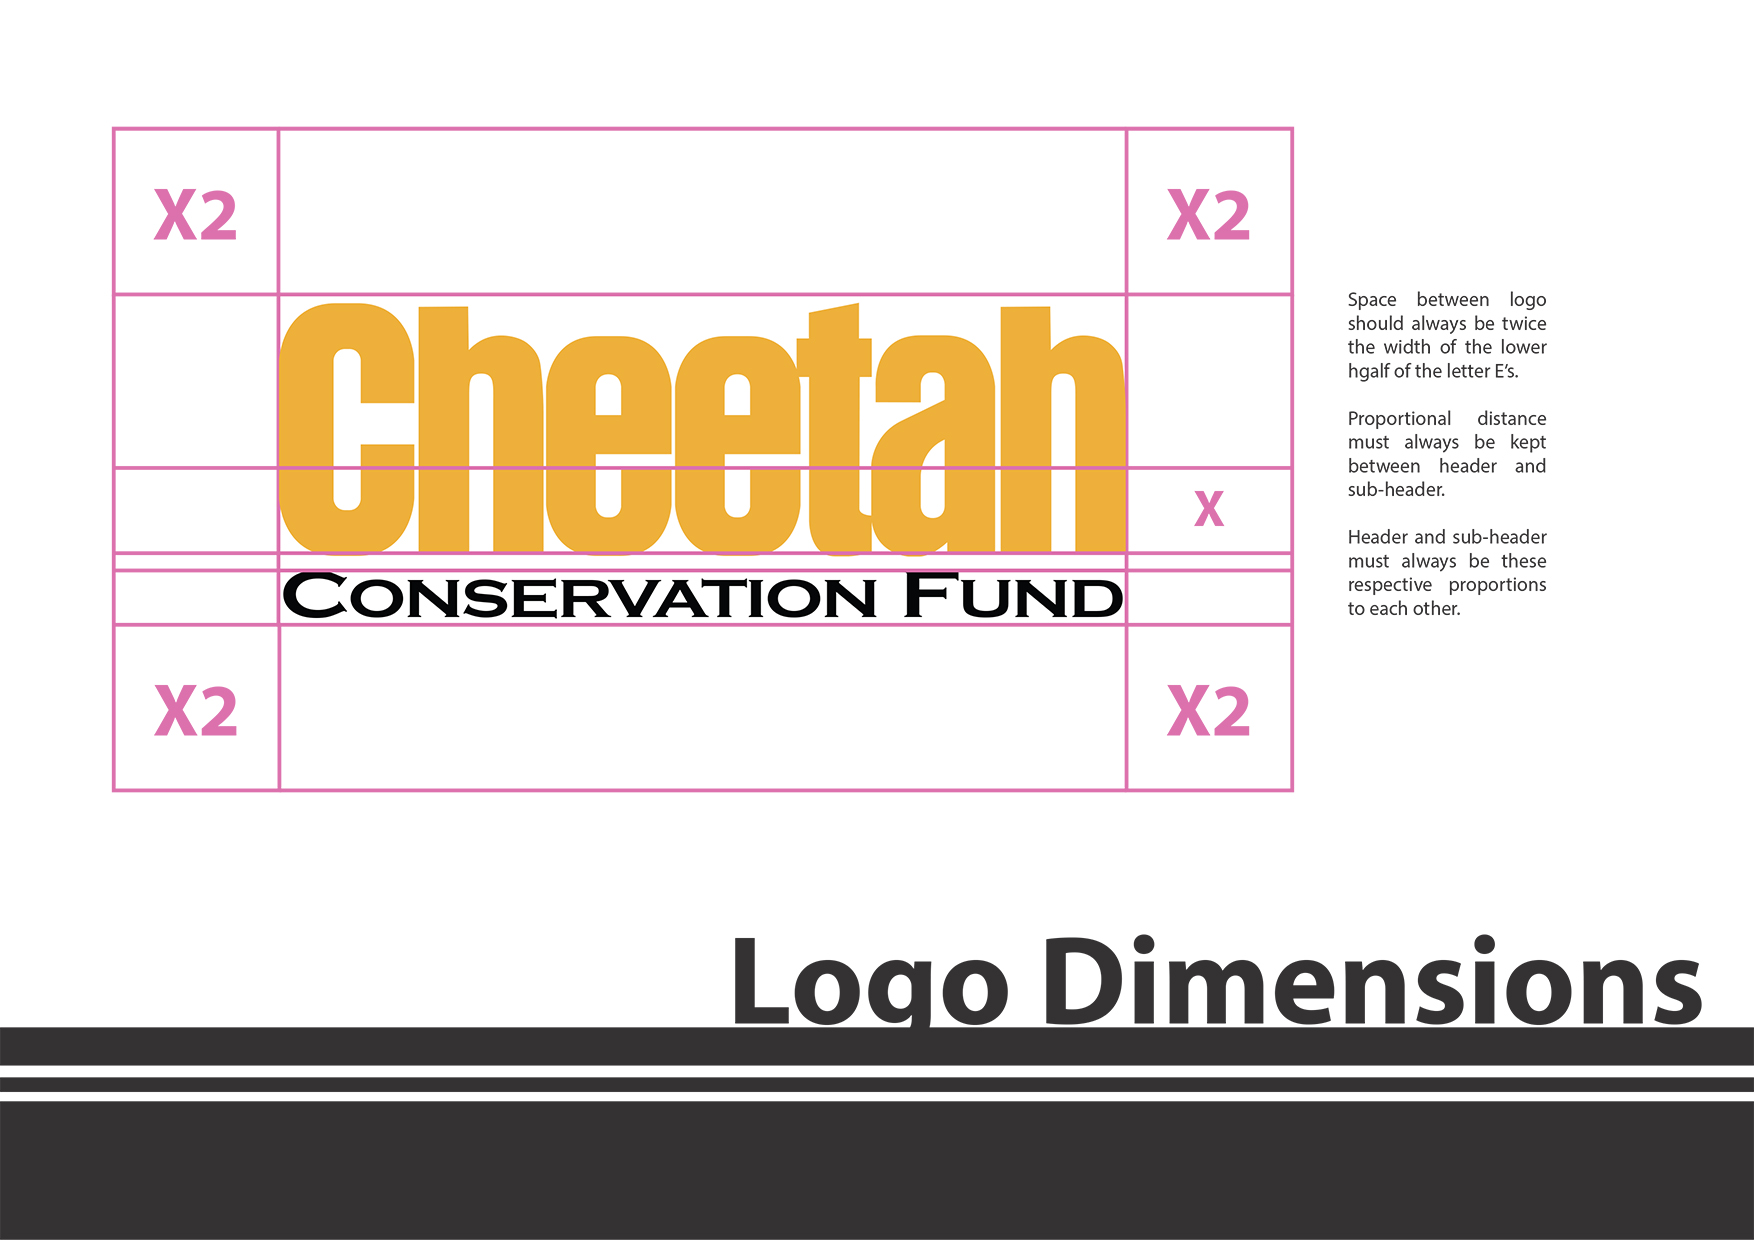 Cheetah Conservation Fund Brand Book (1)-11.jpg